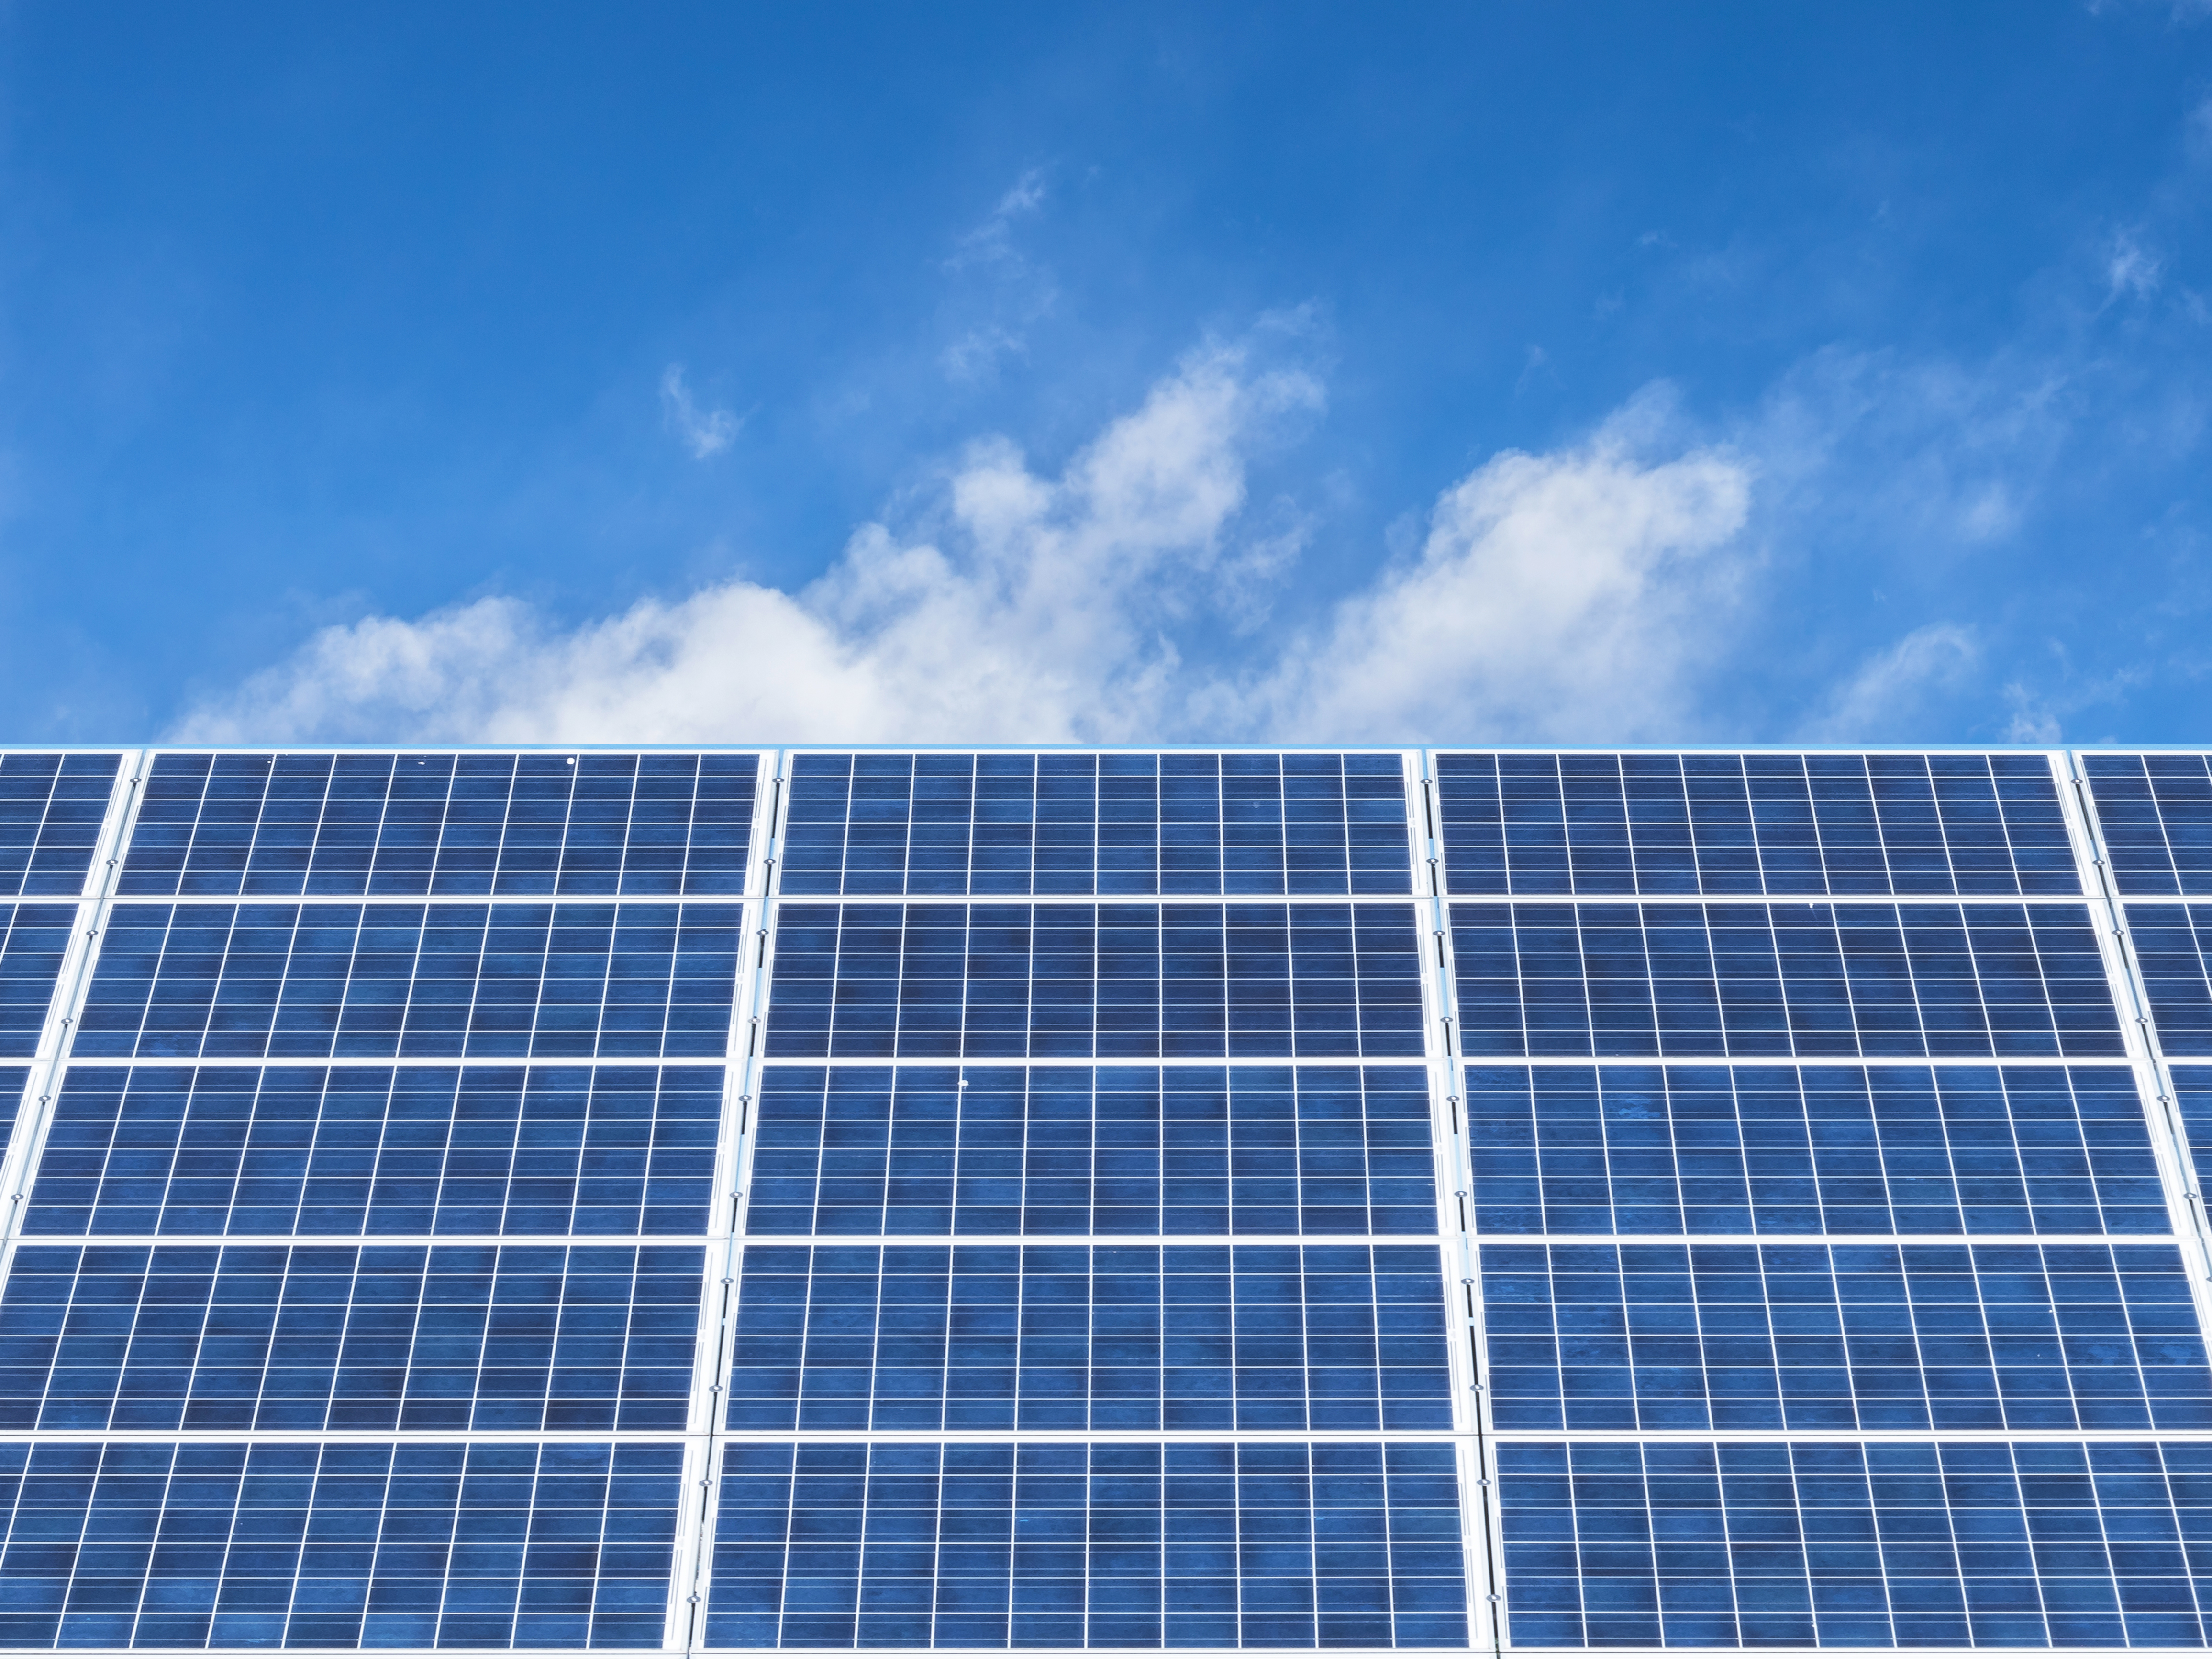 TRWD uses solar power to operate its massive pumps